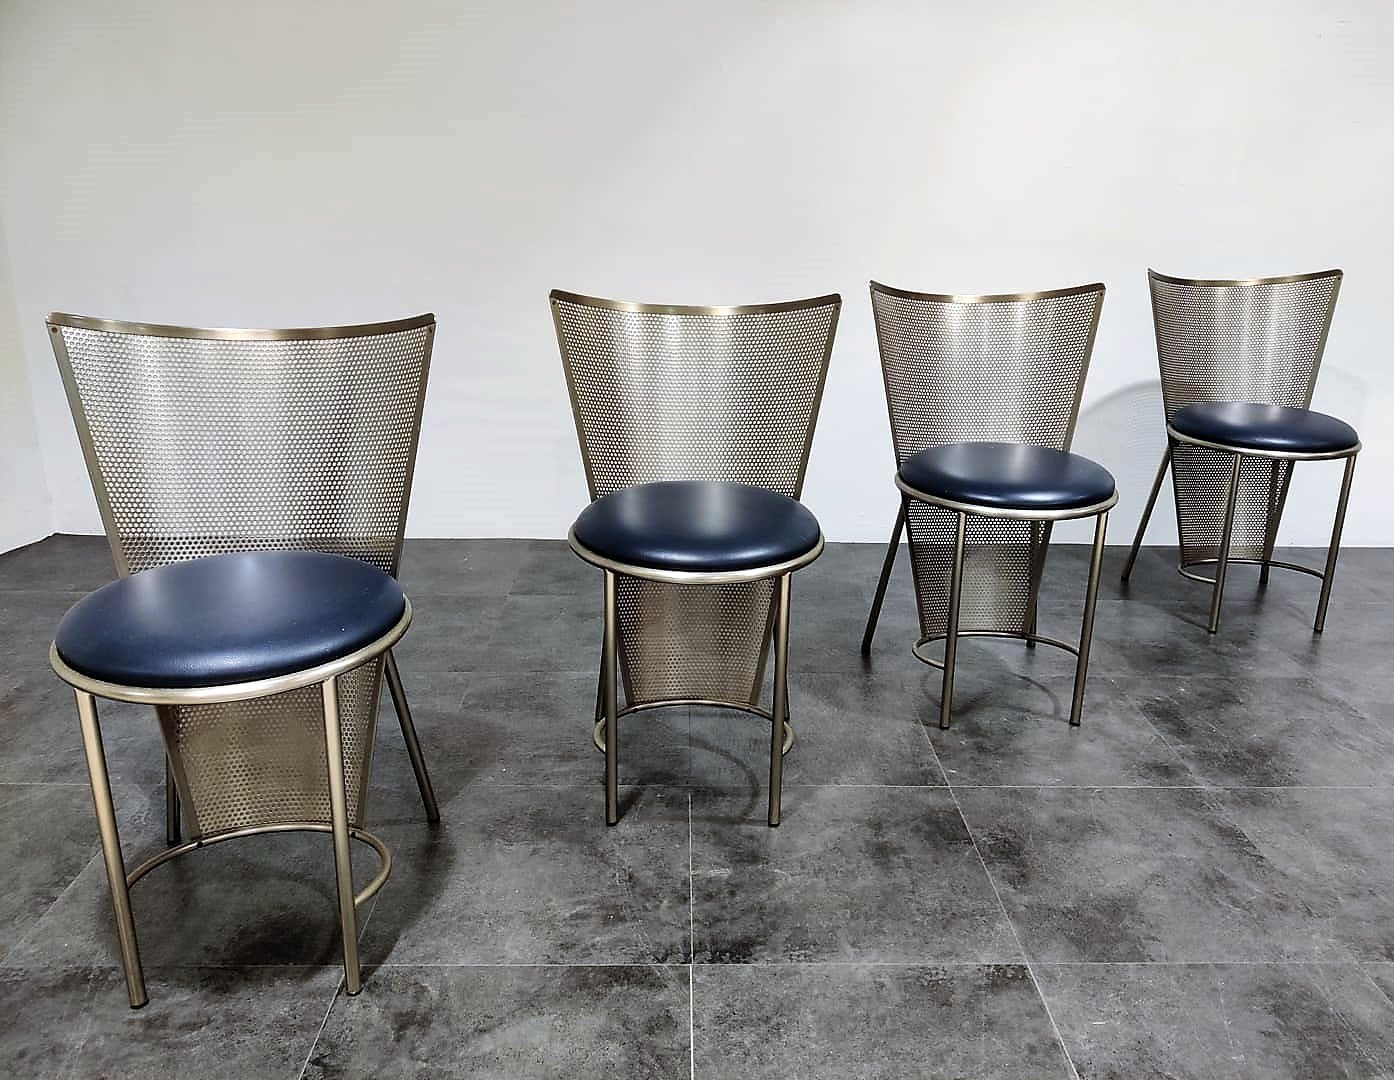 Image of: Set Of 4 Vintage Dining Chairs By Frans Van Praet For Belgo Chrom 1990s 87756